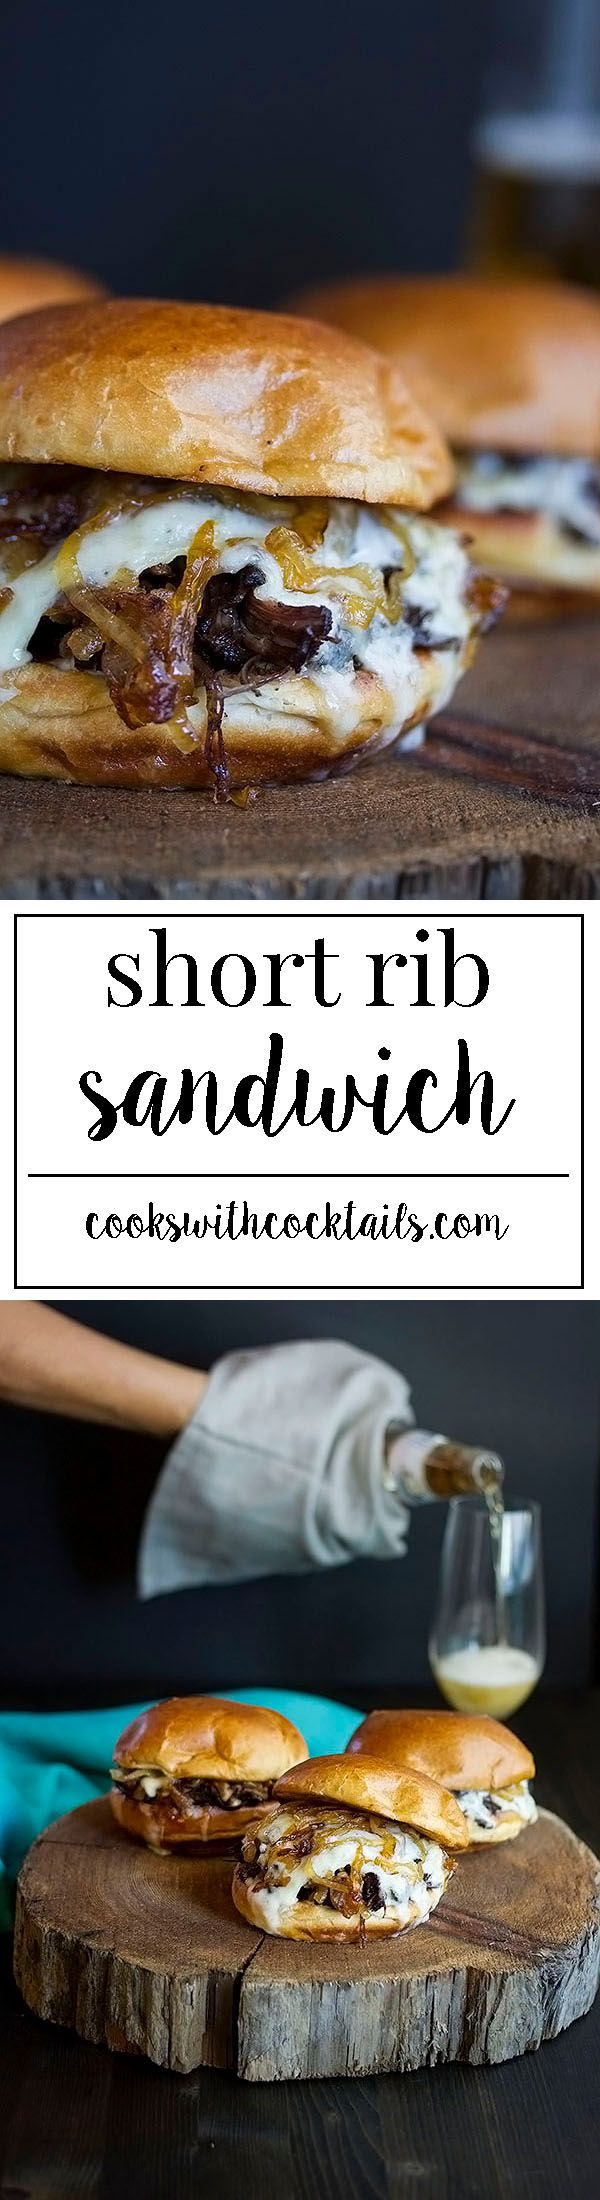 A boneless rib sandwich made with braised short ribs, sweet caramelized onions, melted brie and wine jelly all on a buttered toasted brioche bun.